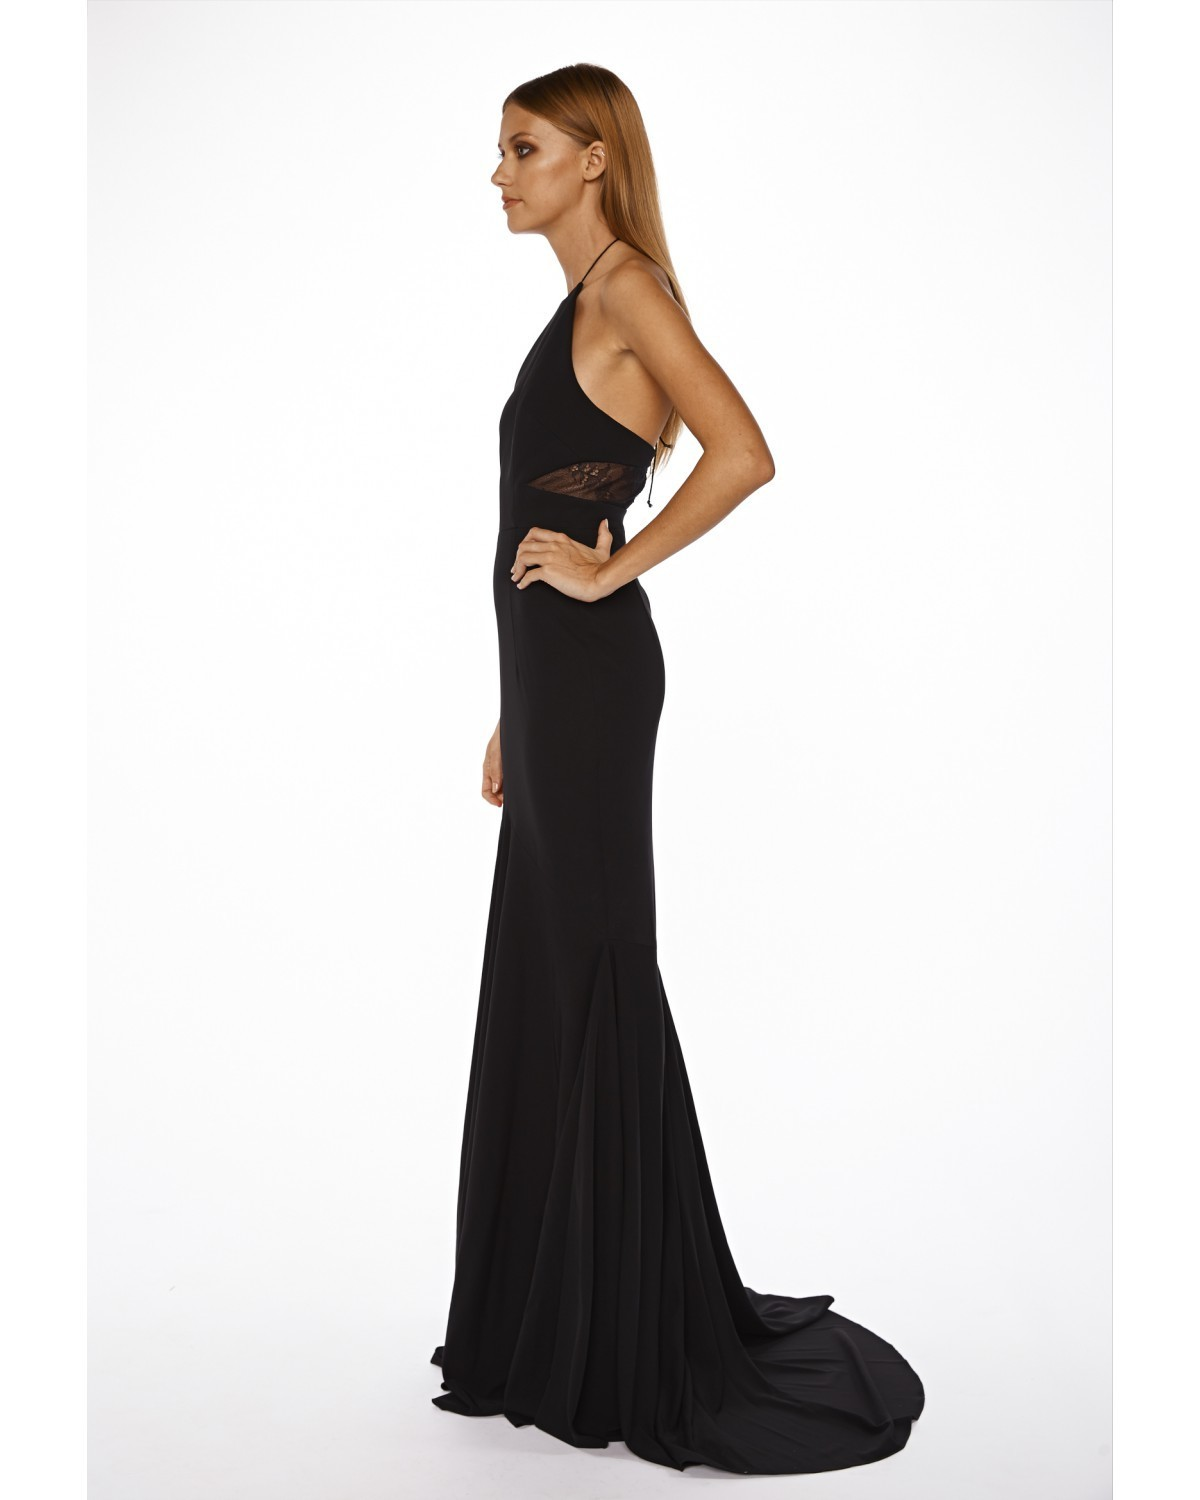 Alex Perry Wedding Gowns: Alex Perry Talise Gown - Black Size 6